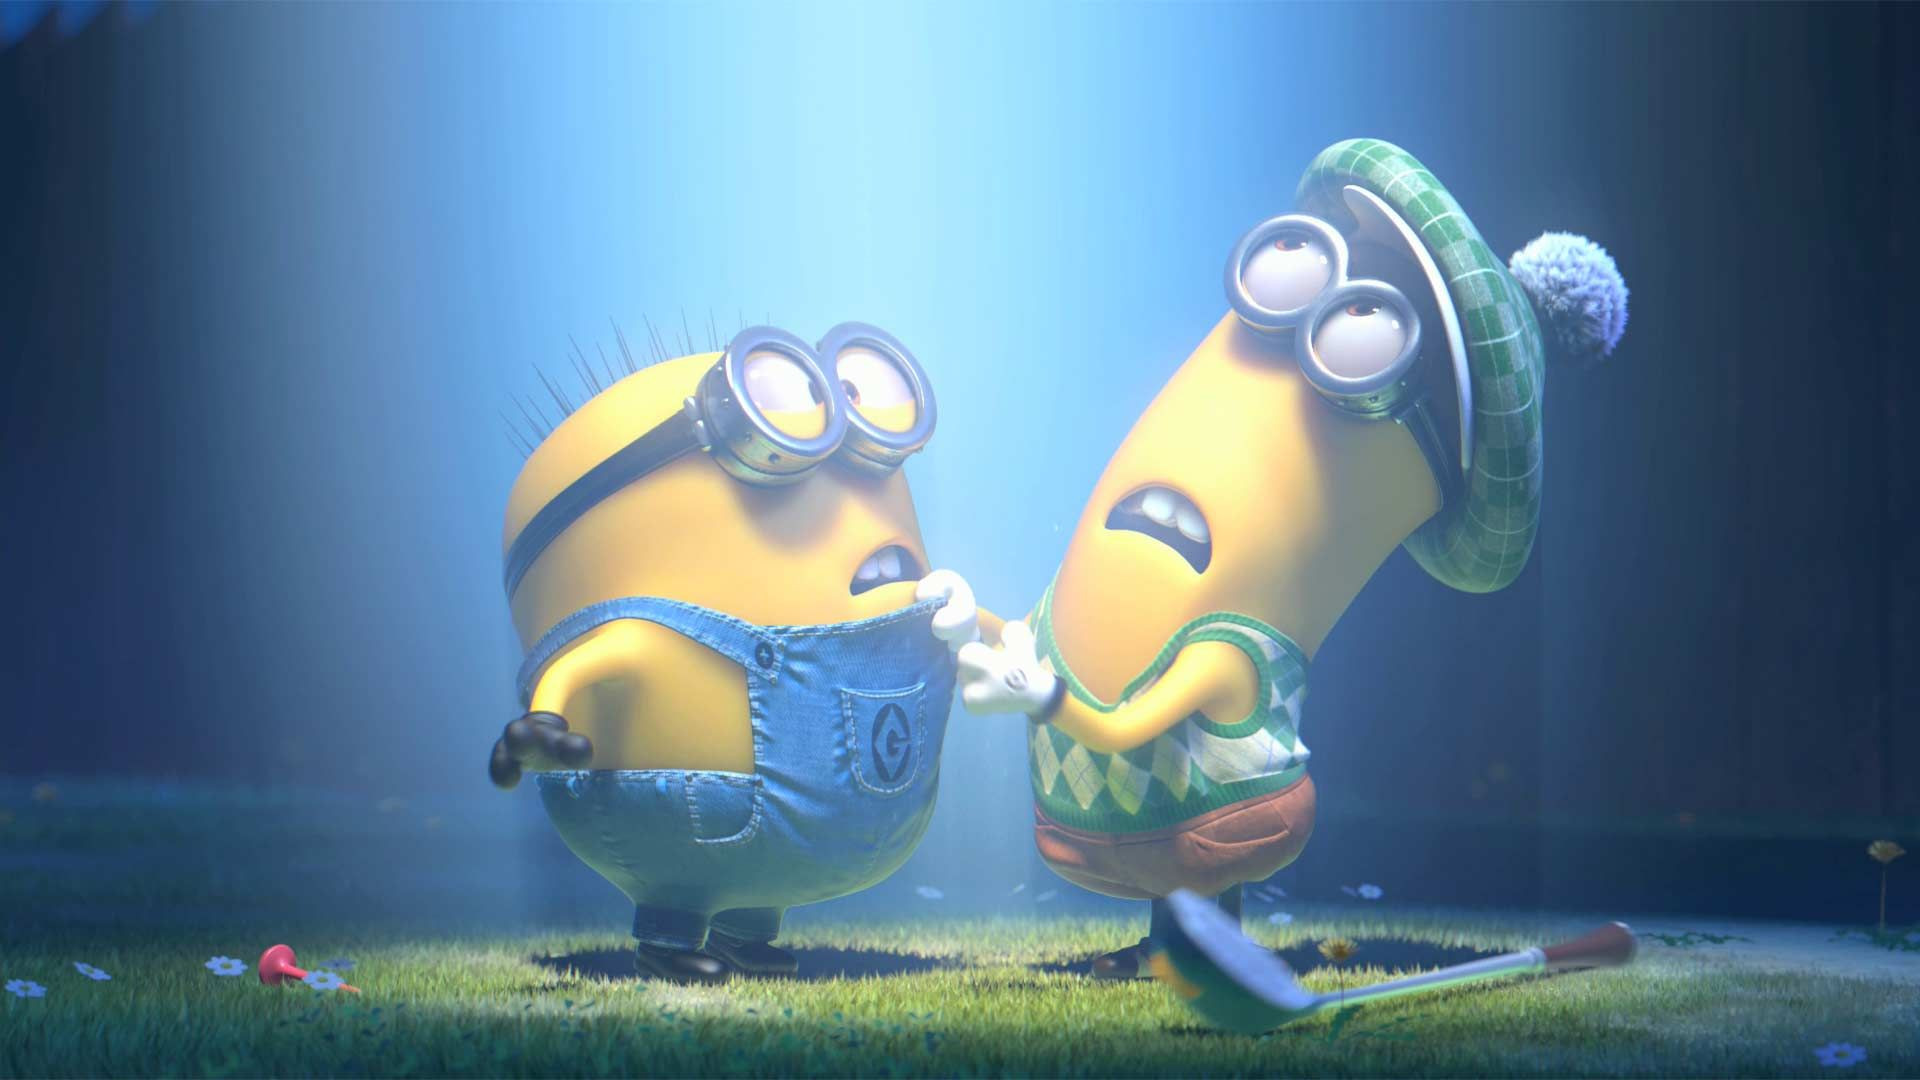 Free Live Desktop Wallpaper Background | Free HD Despicable Me 2 Wallpapers & Desktop ...